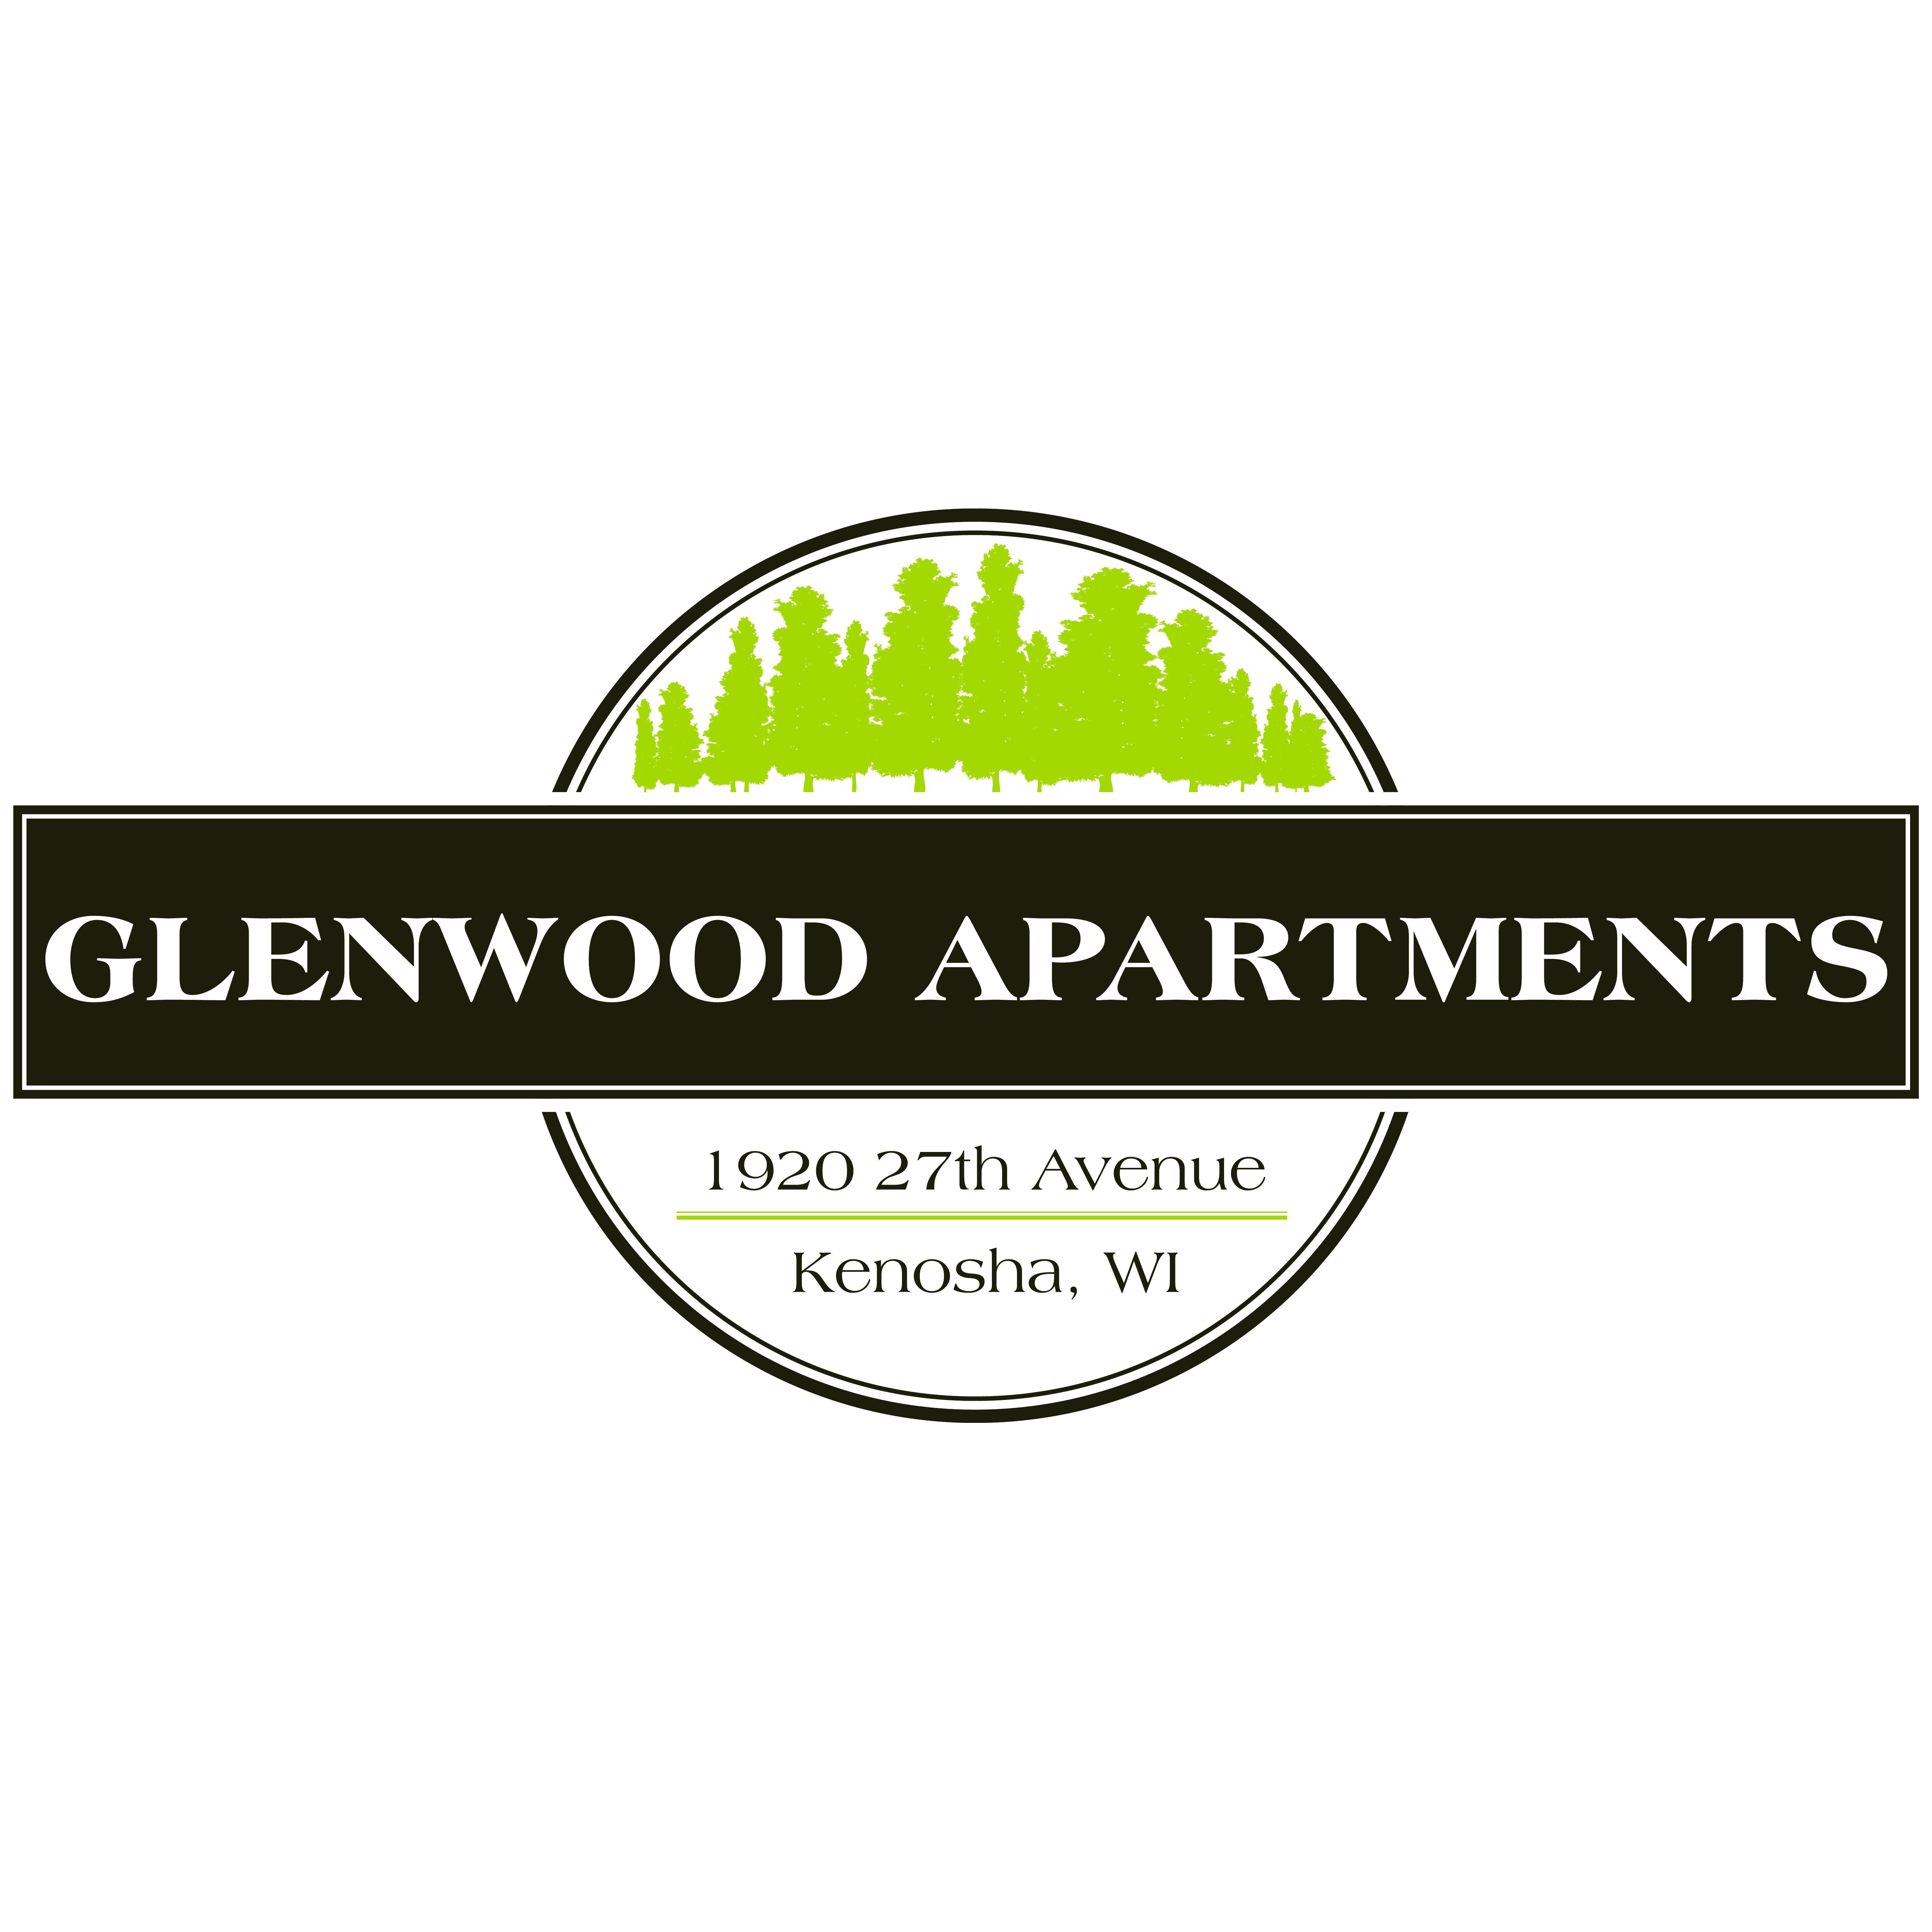 Glenwood Senior Apartments - Kenosha, WI 53140 - (262)945-7110 | ShowMeLocal.com